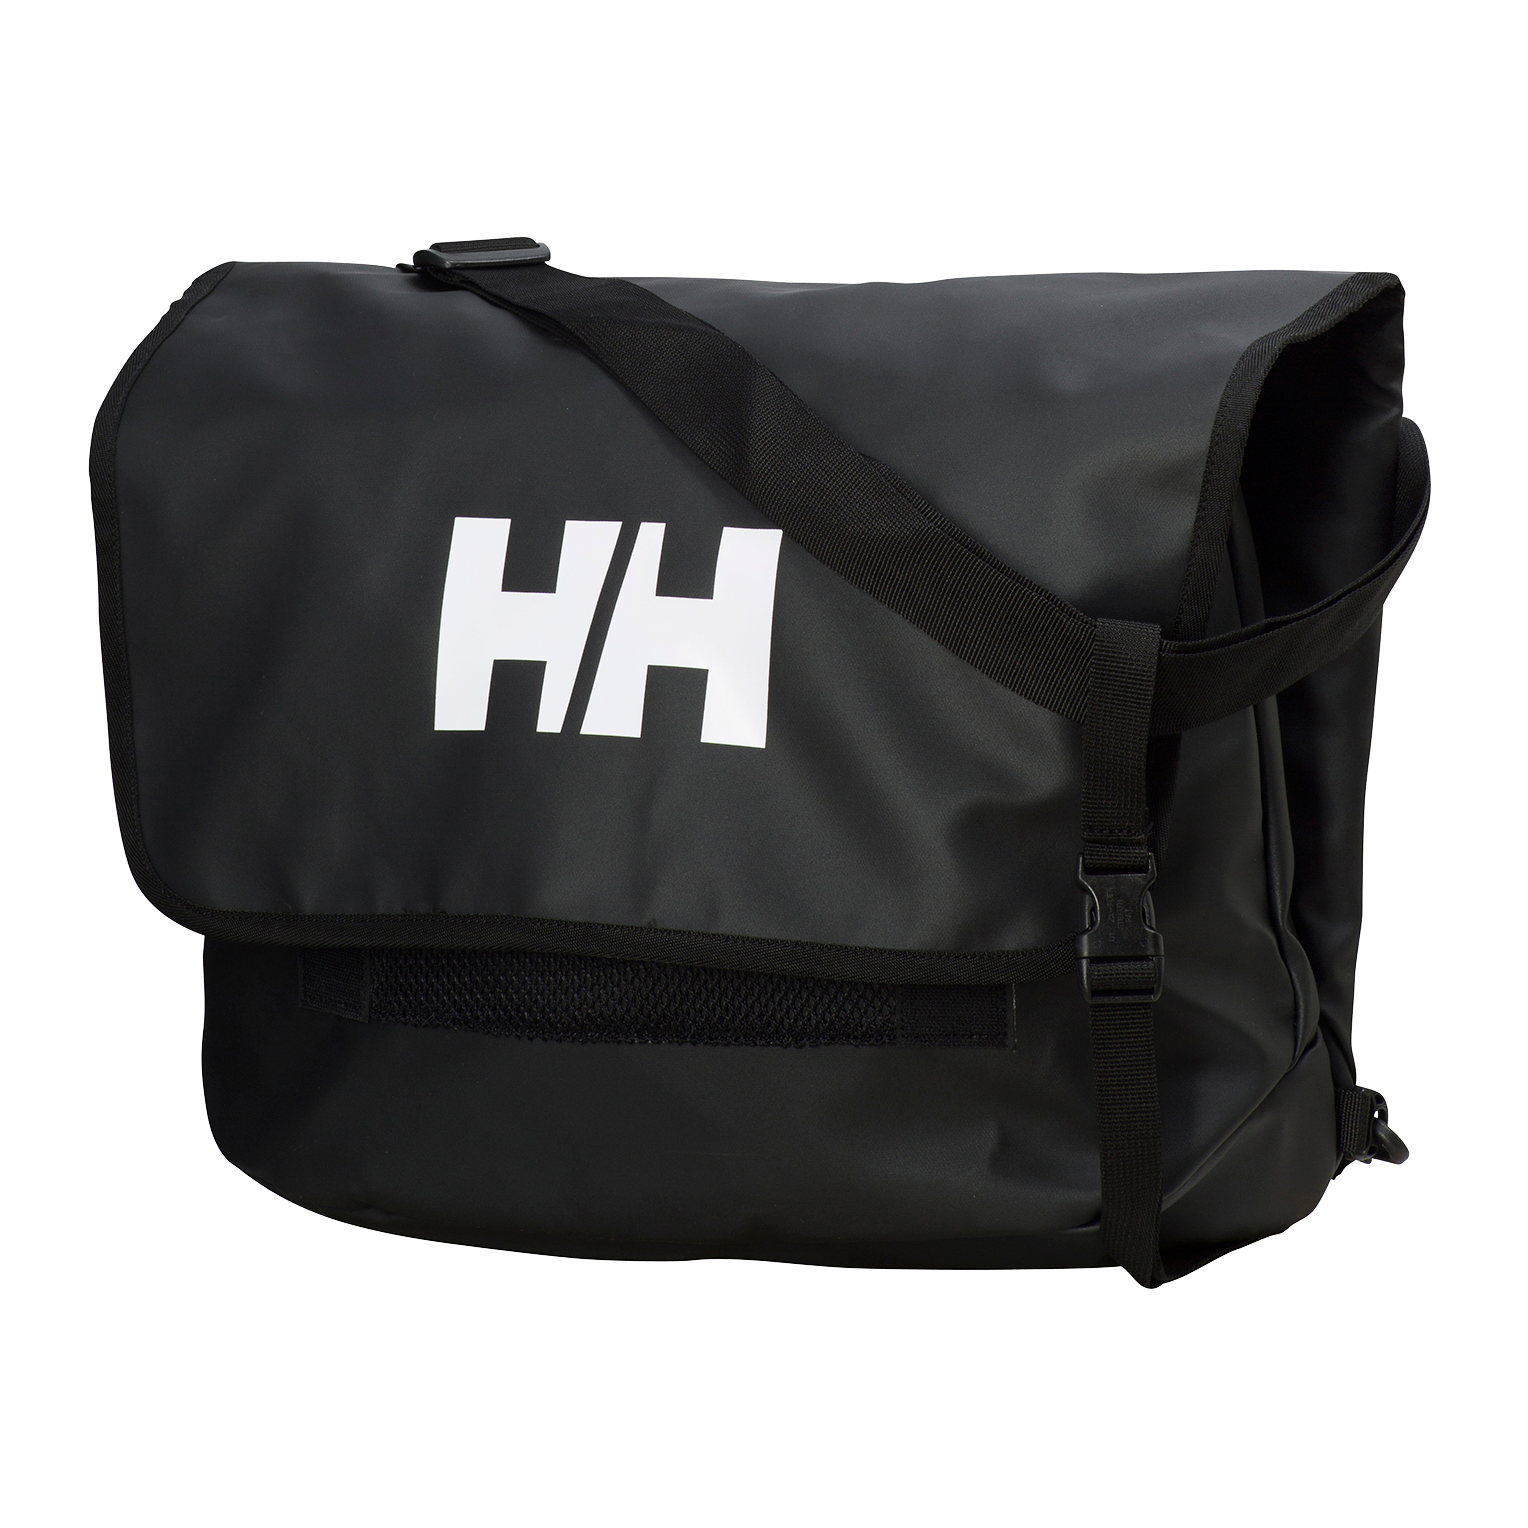 aceaf67bd69 HH TRAVEL MESSENGER BAG - Hombre - Bolsas y mochilas - Helly Hansen  Official Online Store